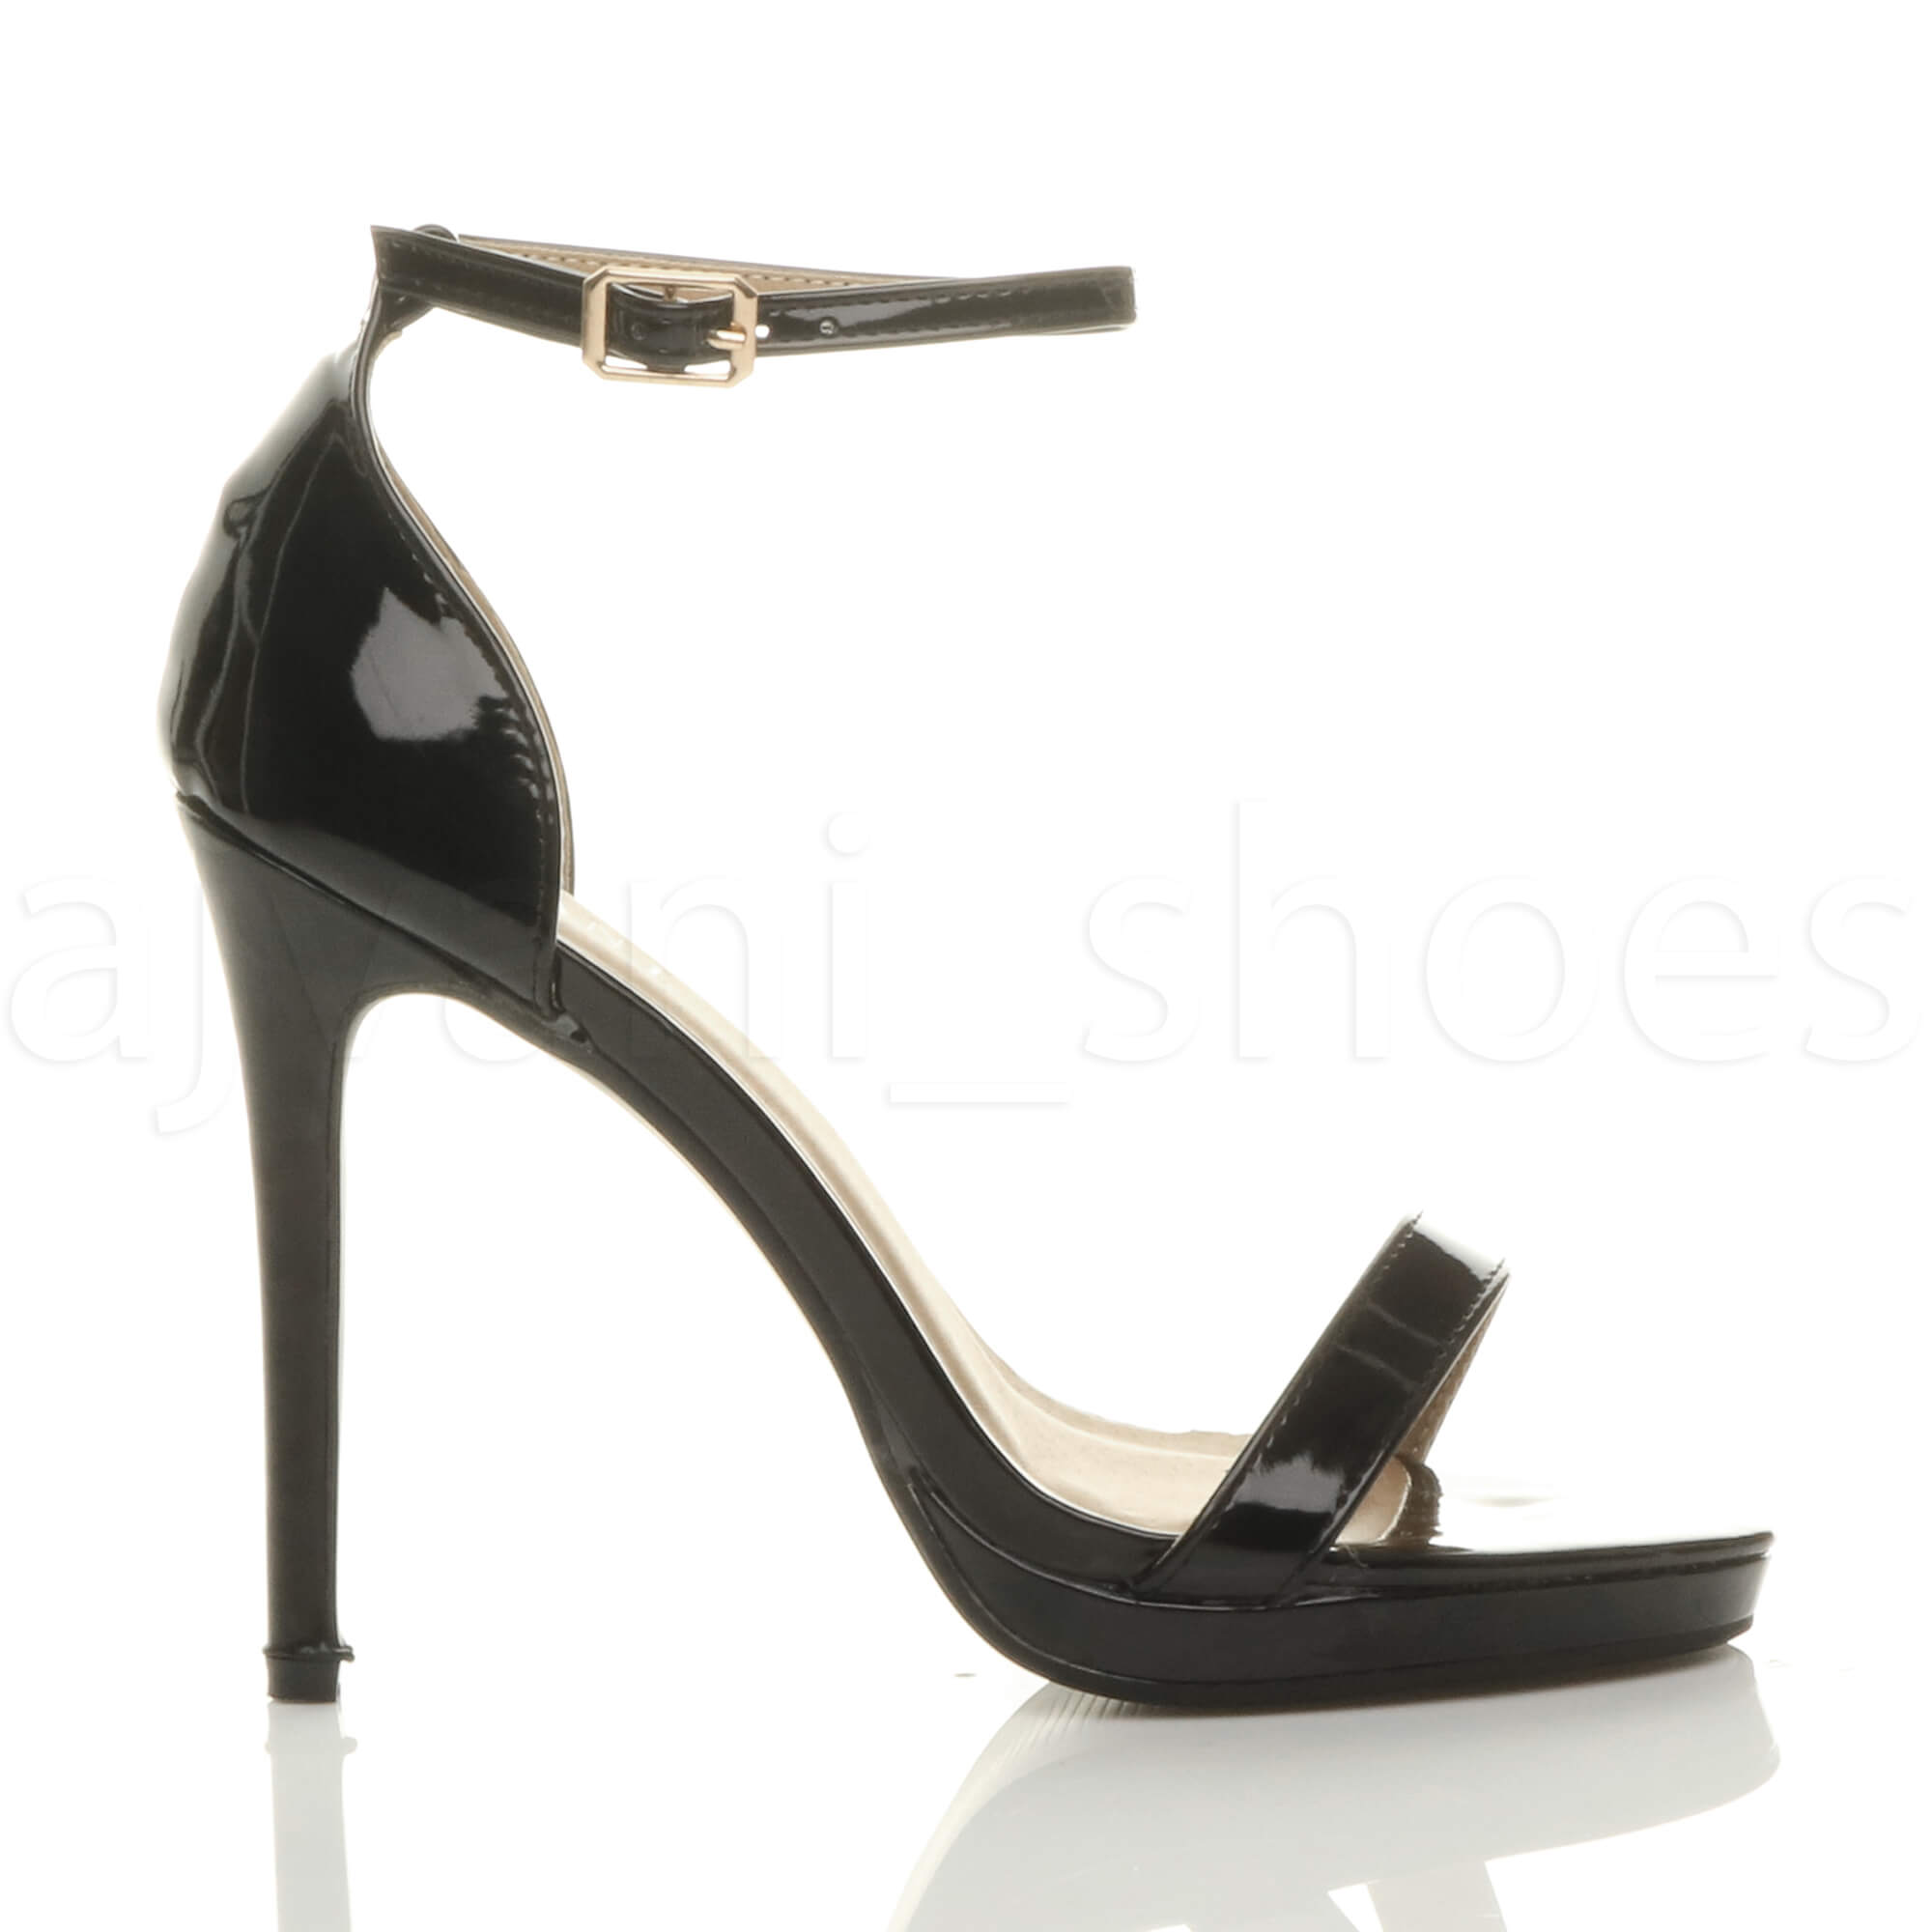 WOMENS-LADIES-HIGH-HEEL-PEEP-TOE-BARELY-THERE-ANKLE-STRAP-BUCKLE-SANDALS-SIZE thumbnail 16